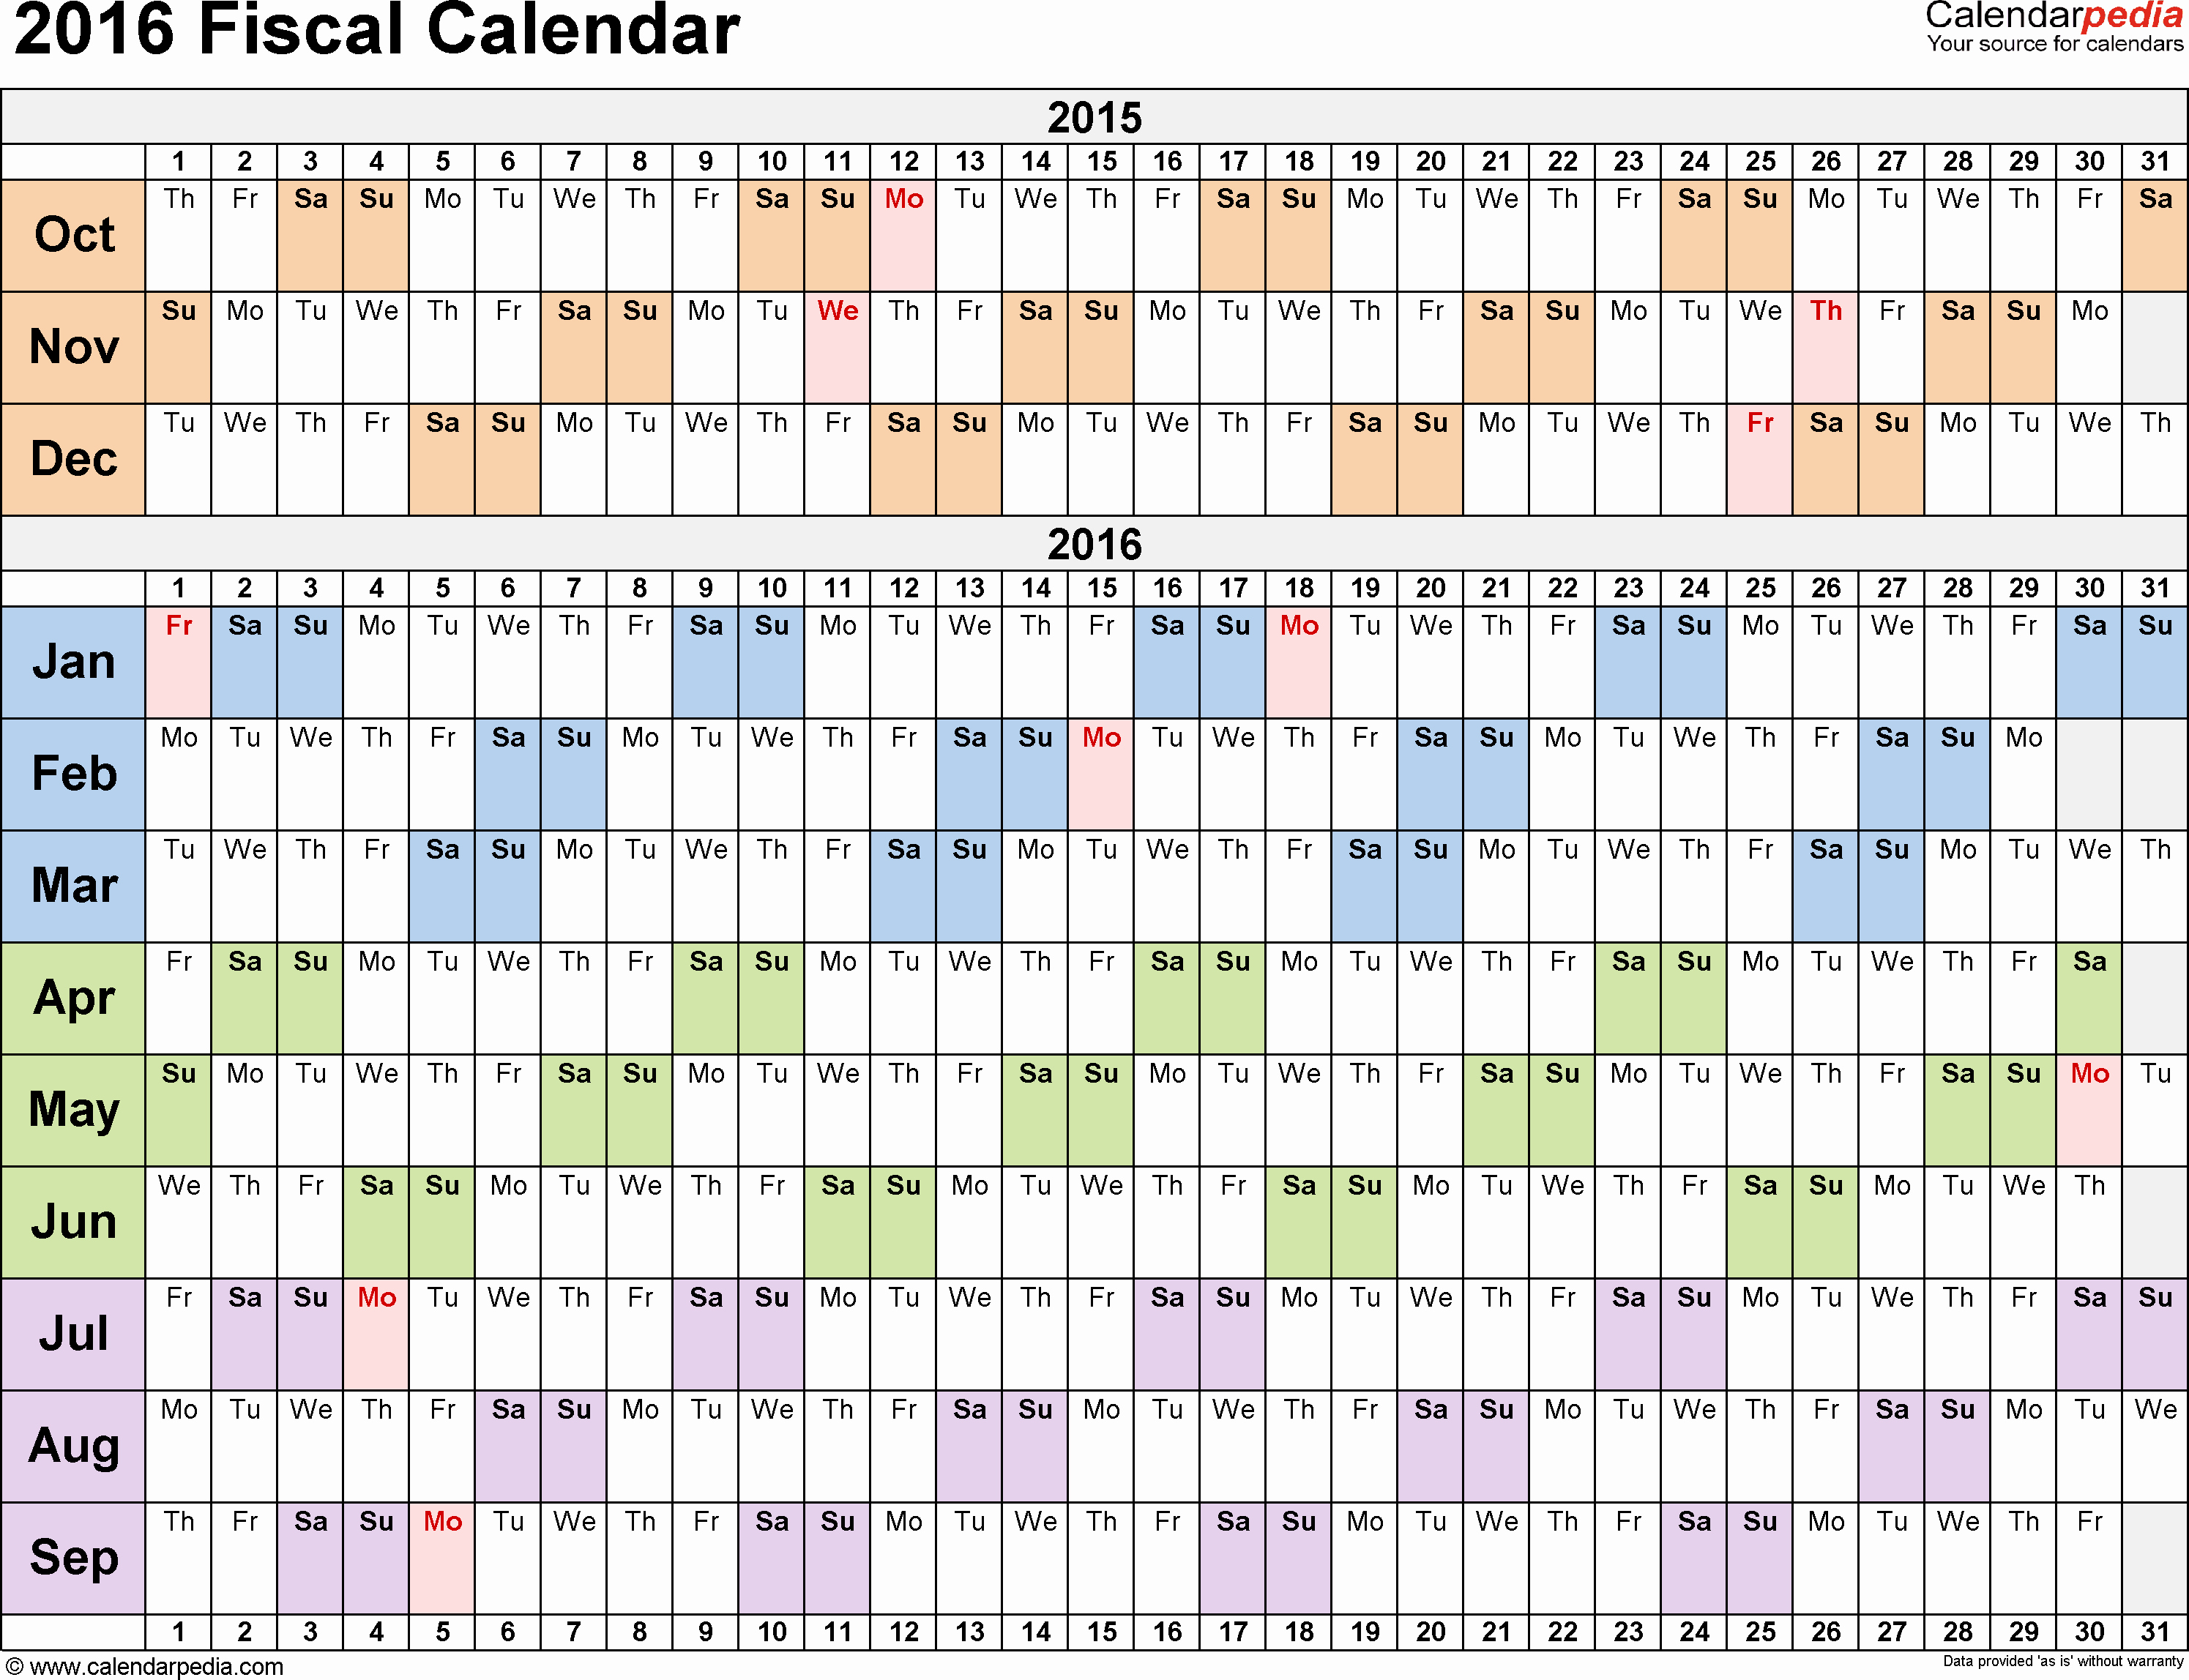 5 Year Calendar Starting 2016 Elegant Fiscal Calendars 2016 as Free Printable Pdf Templates